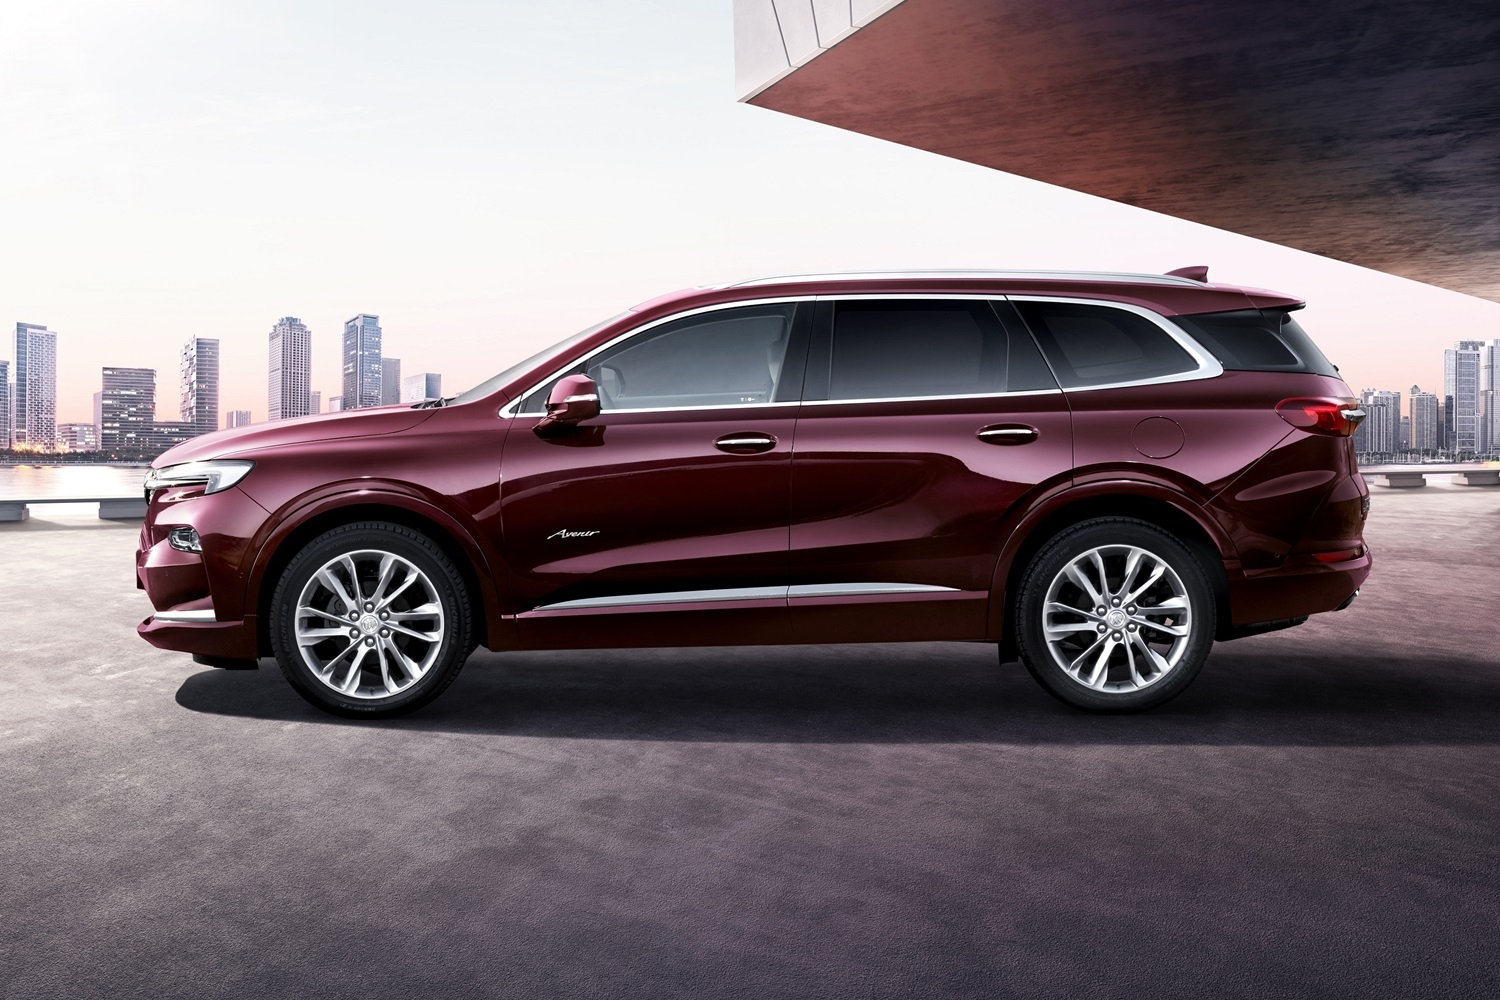 Gm Shows All-New China-Spec Buick Enclave Avenir | Gm Authority New 2022 Buick Enclave Specs, Seat Covers, Towing Capacity